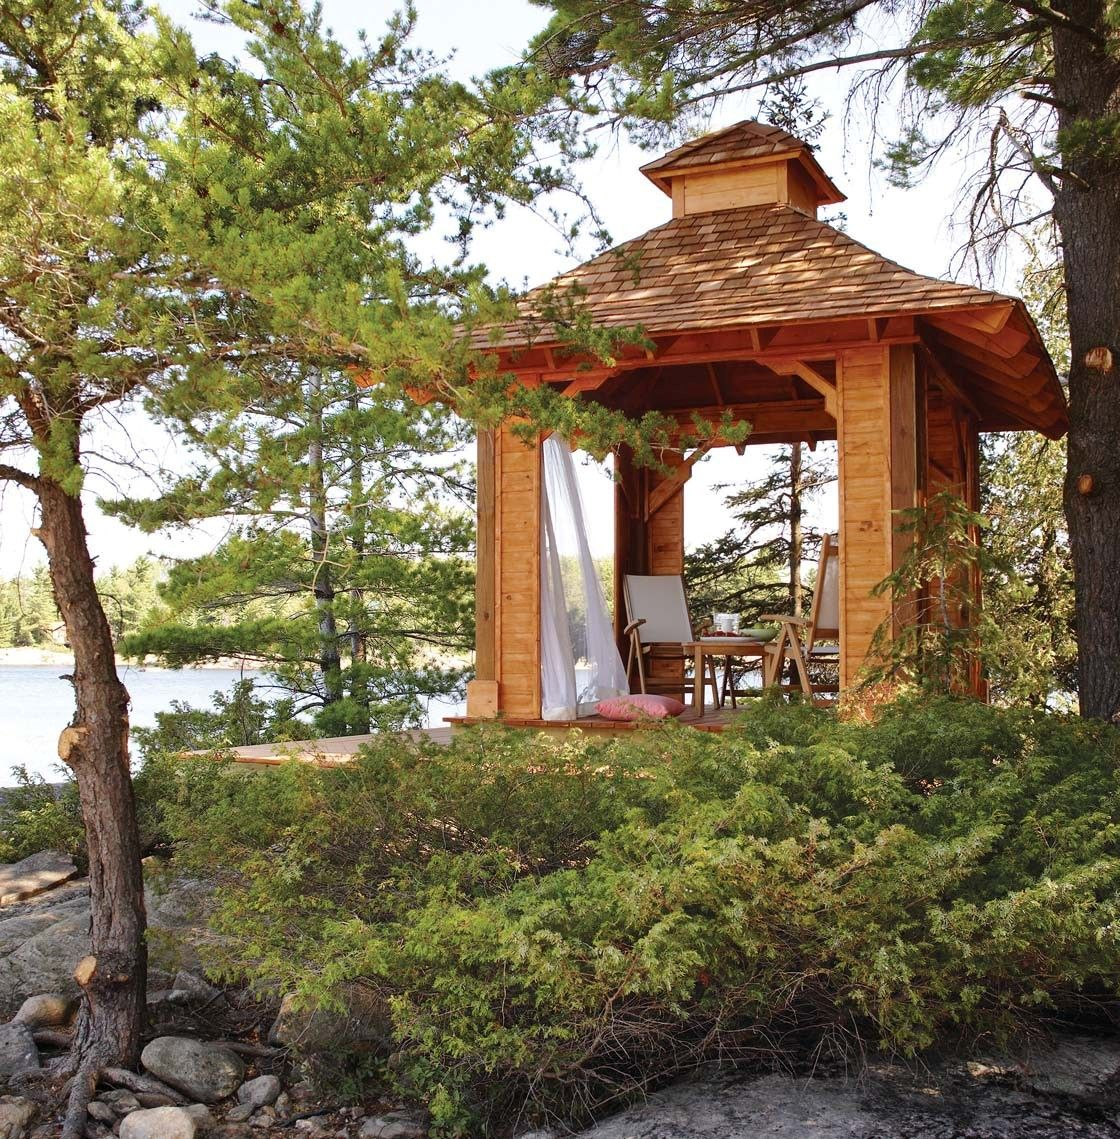 How To Build Your Own Wooden Gazebo – 10 Amazing Projects